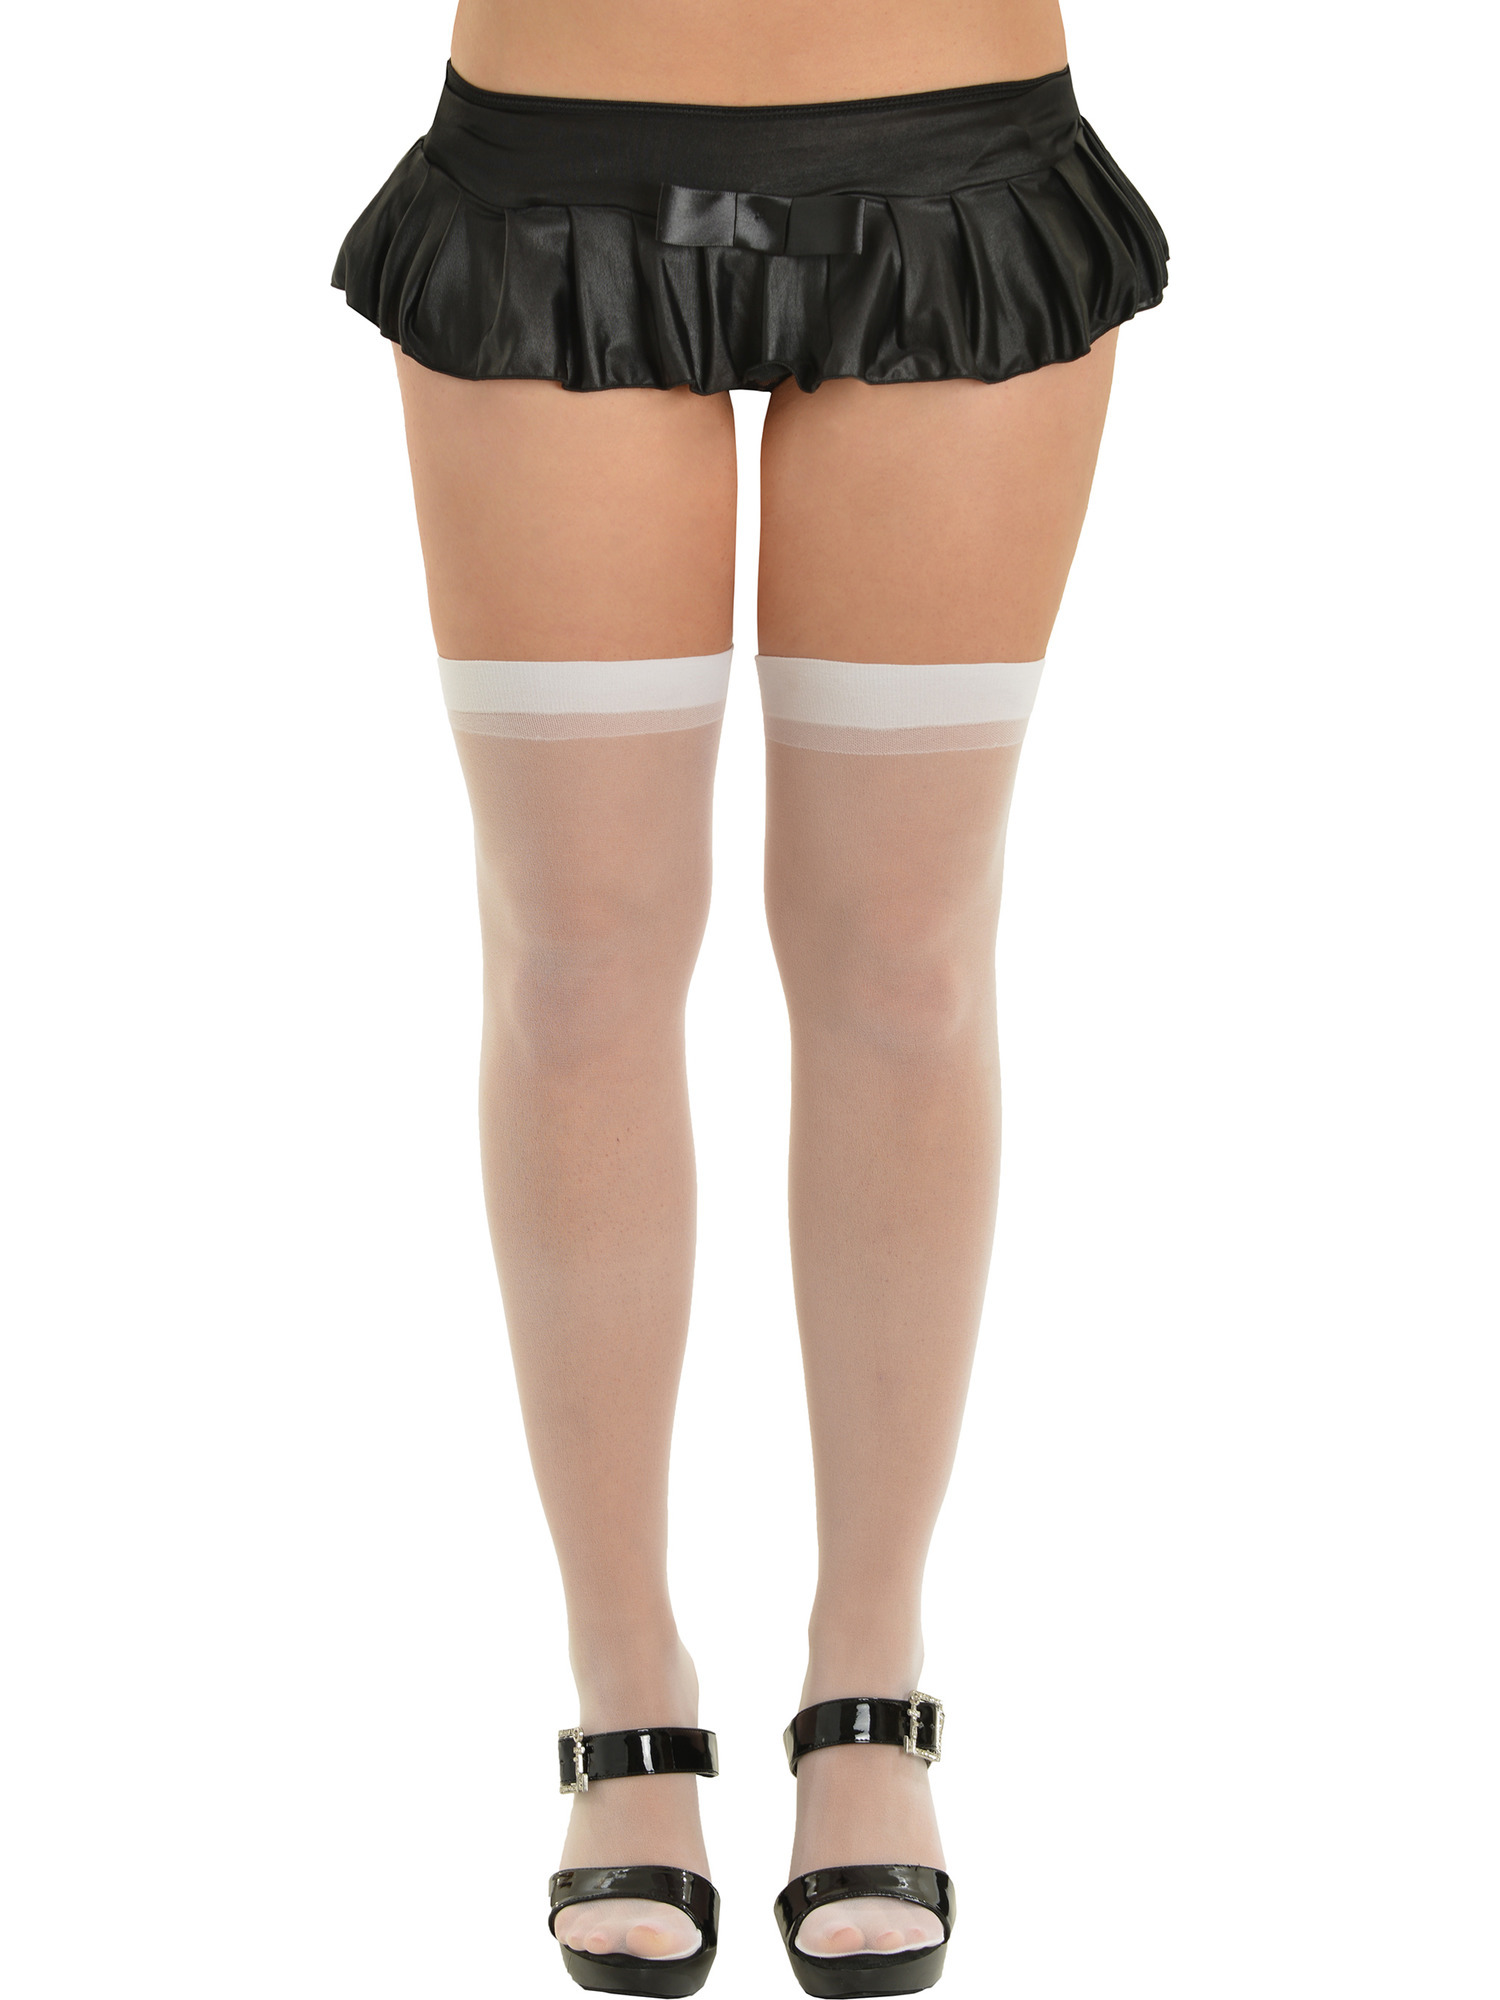 Womens Sheer Thigh High Nylons White Red Ivory Pink Nude or Black Stockings